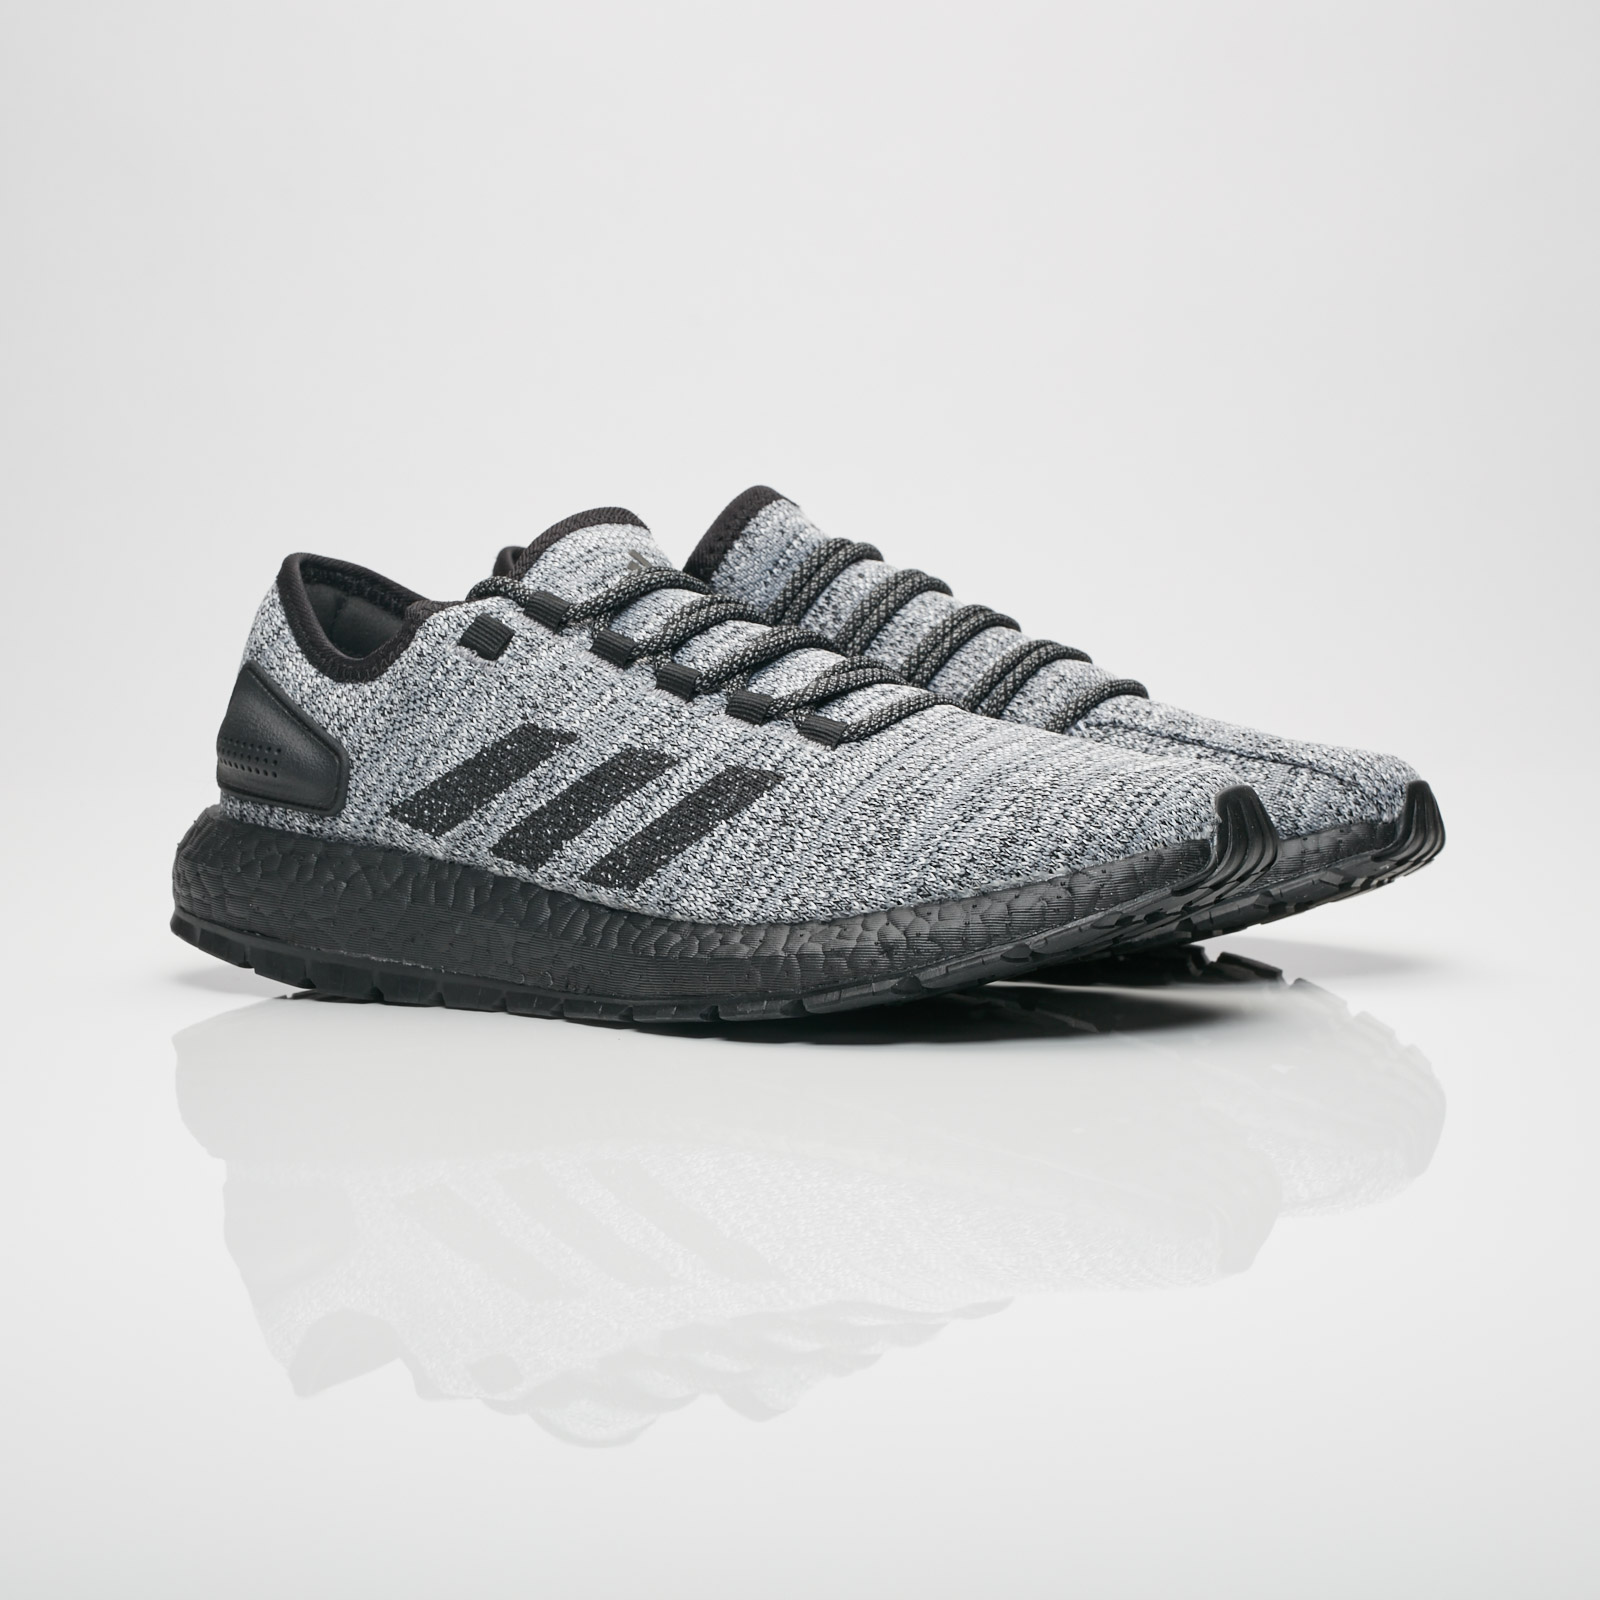 052f8cd20296b adidas Pure Boost All Terrain - Cg2989 - Sneakersnstuff